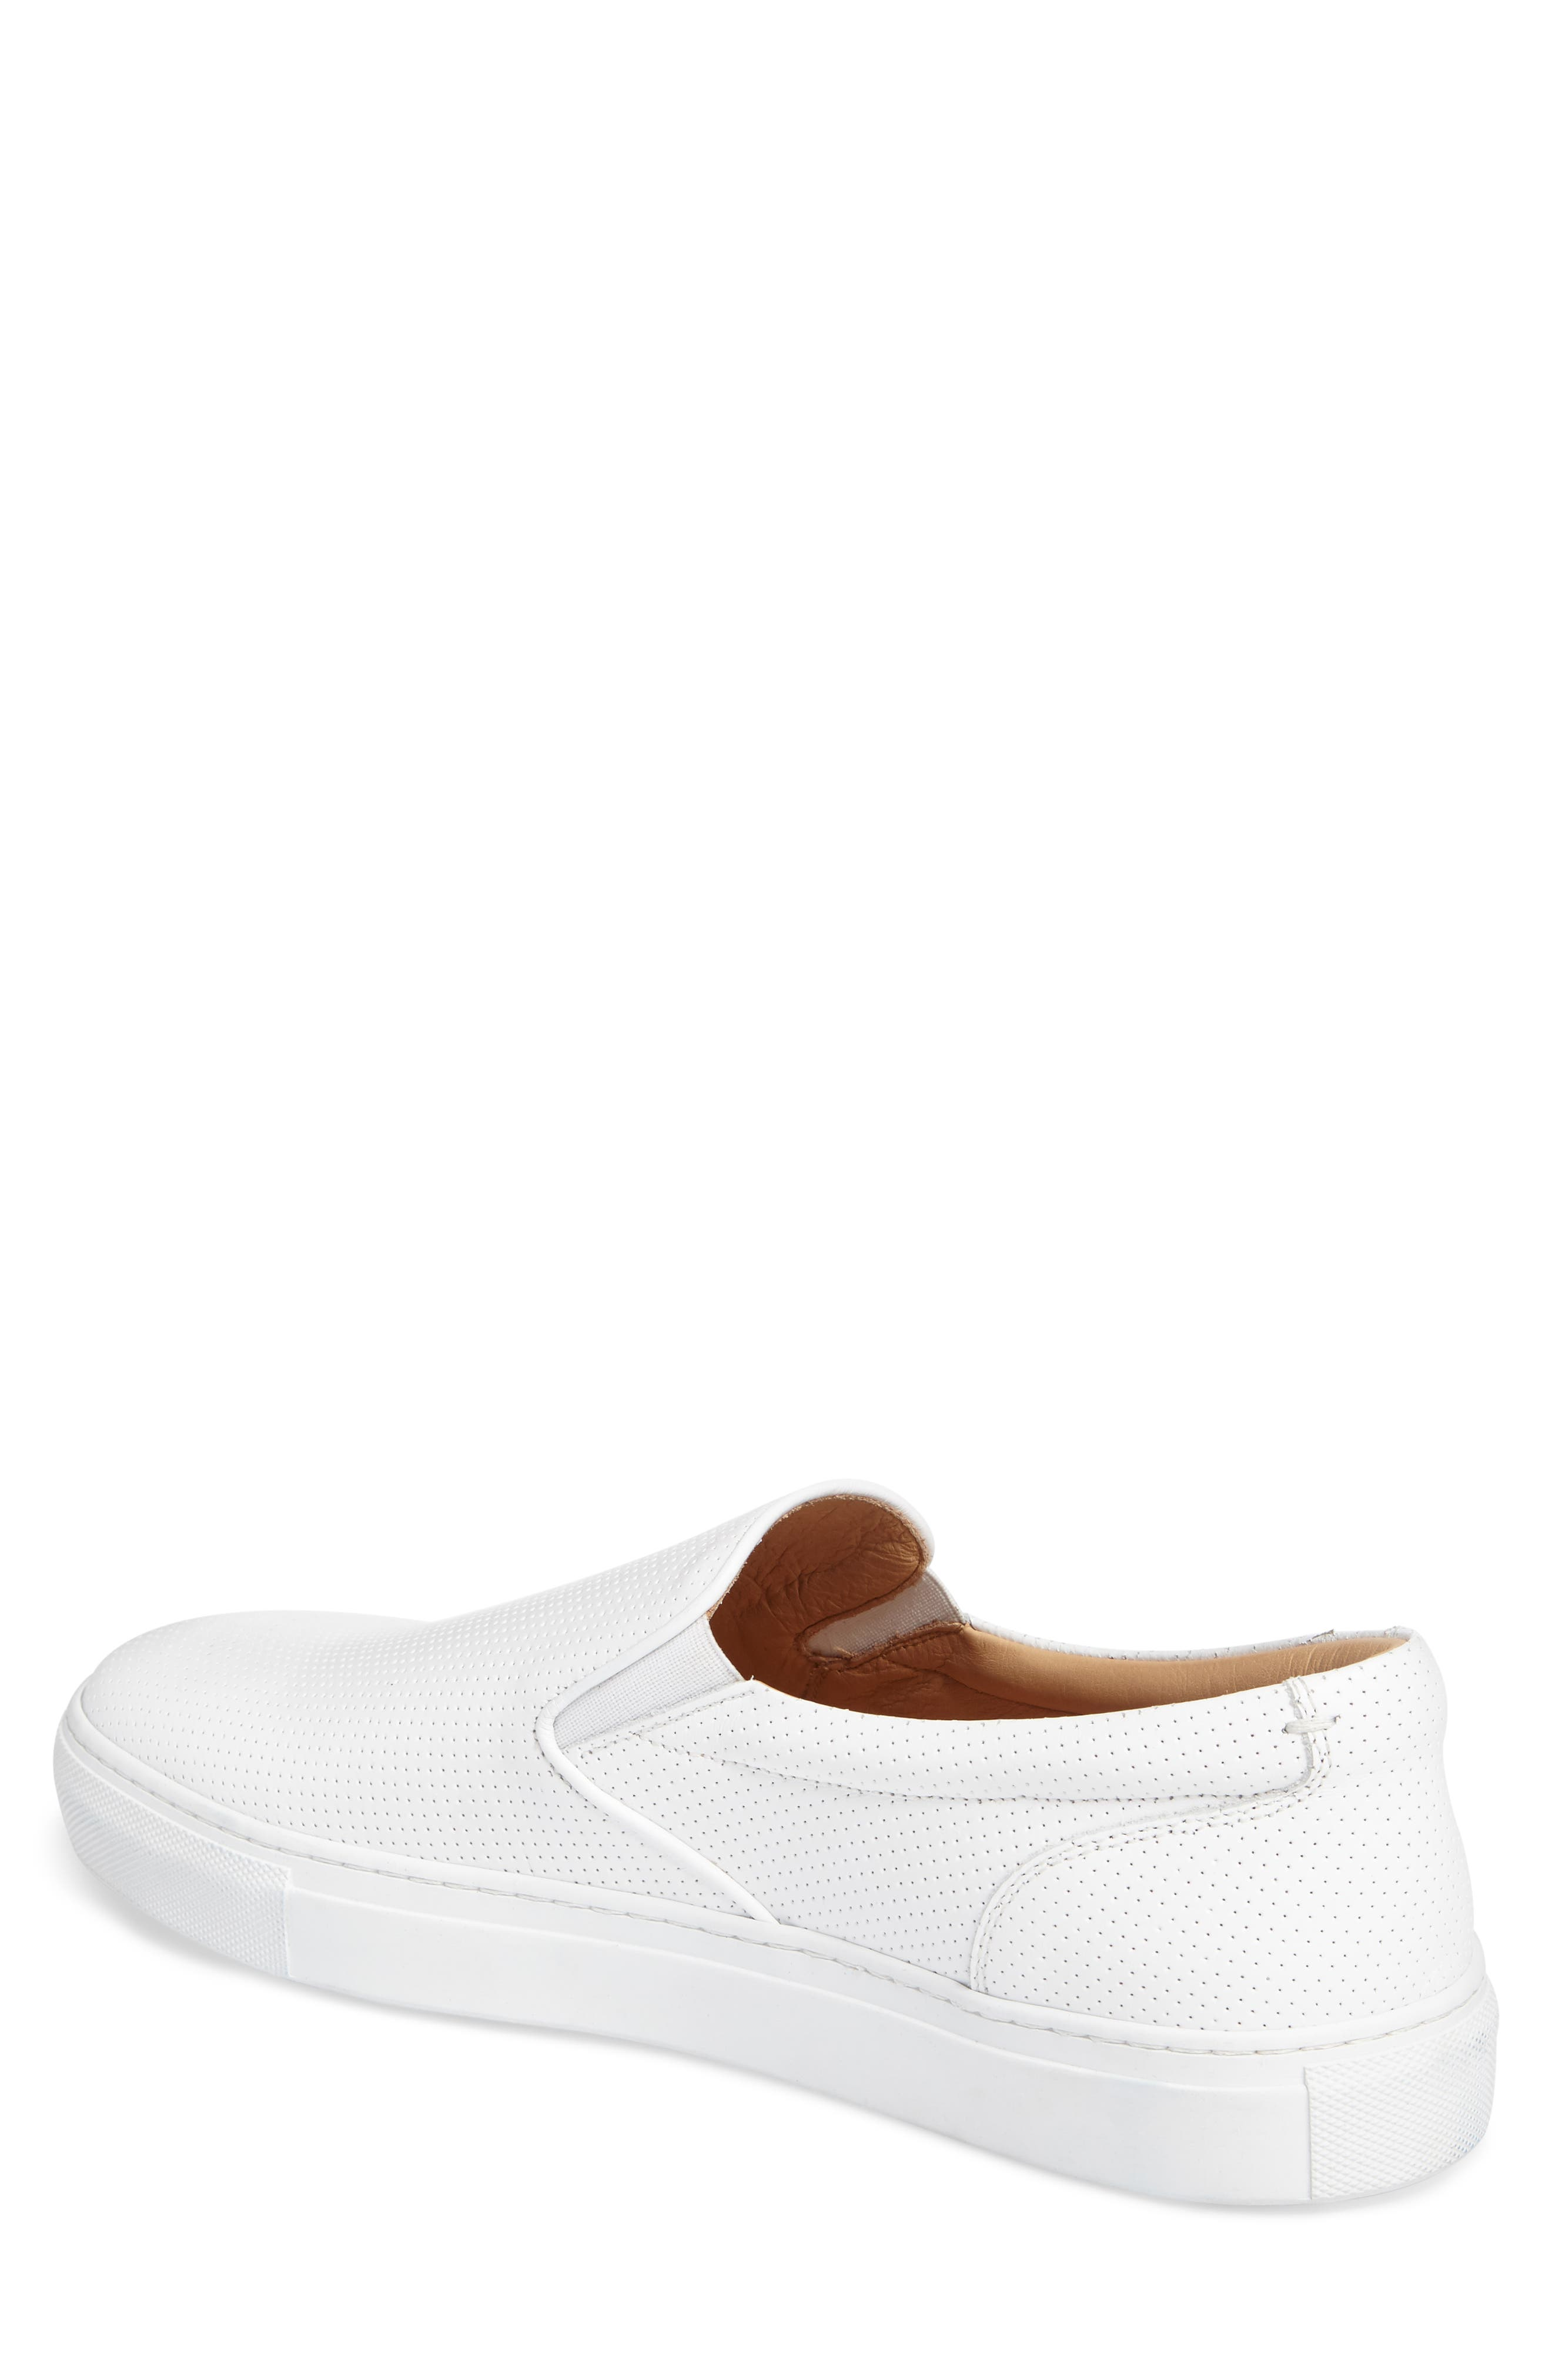 Wooster Slip-On Sneaker,                             Alternate thumbnail 2, color,                             WHITE PERFORATED LEATHER